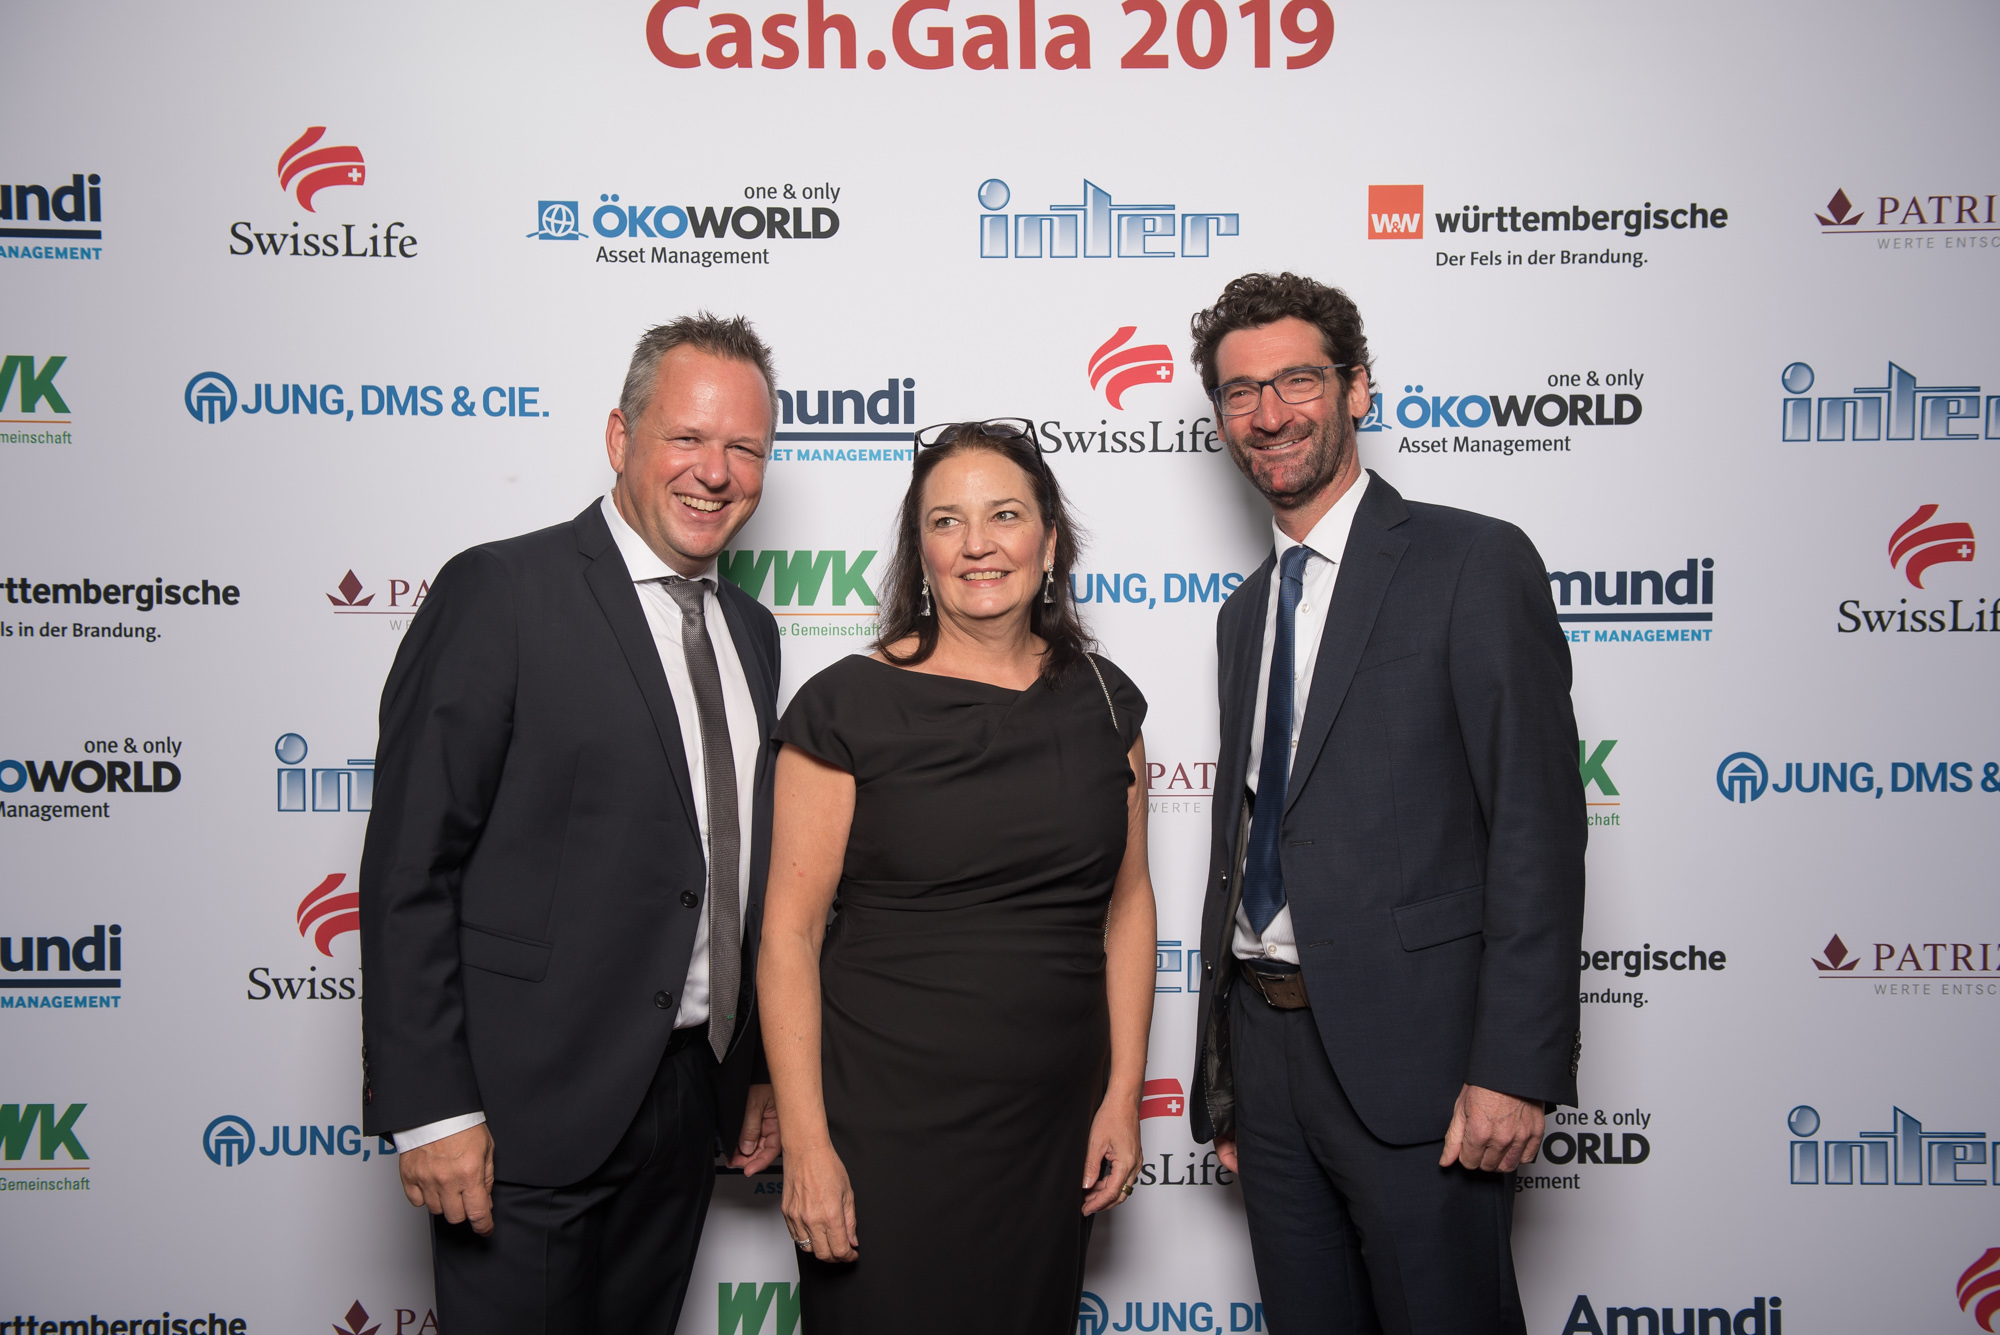 CashGala 2019 0057 AM DSC7113 in Cash.Gala 2019